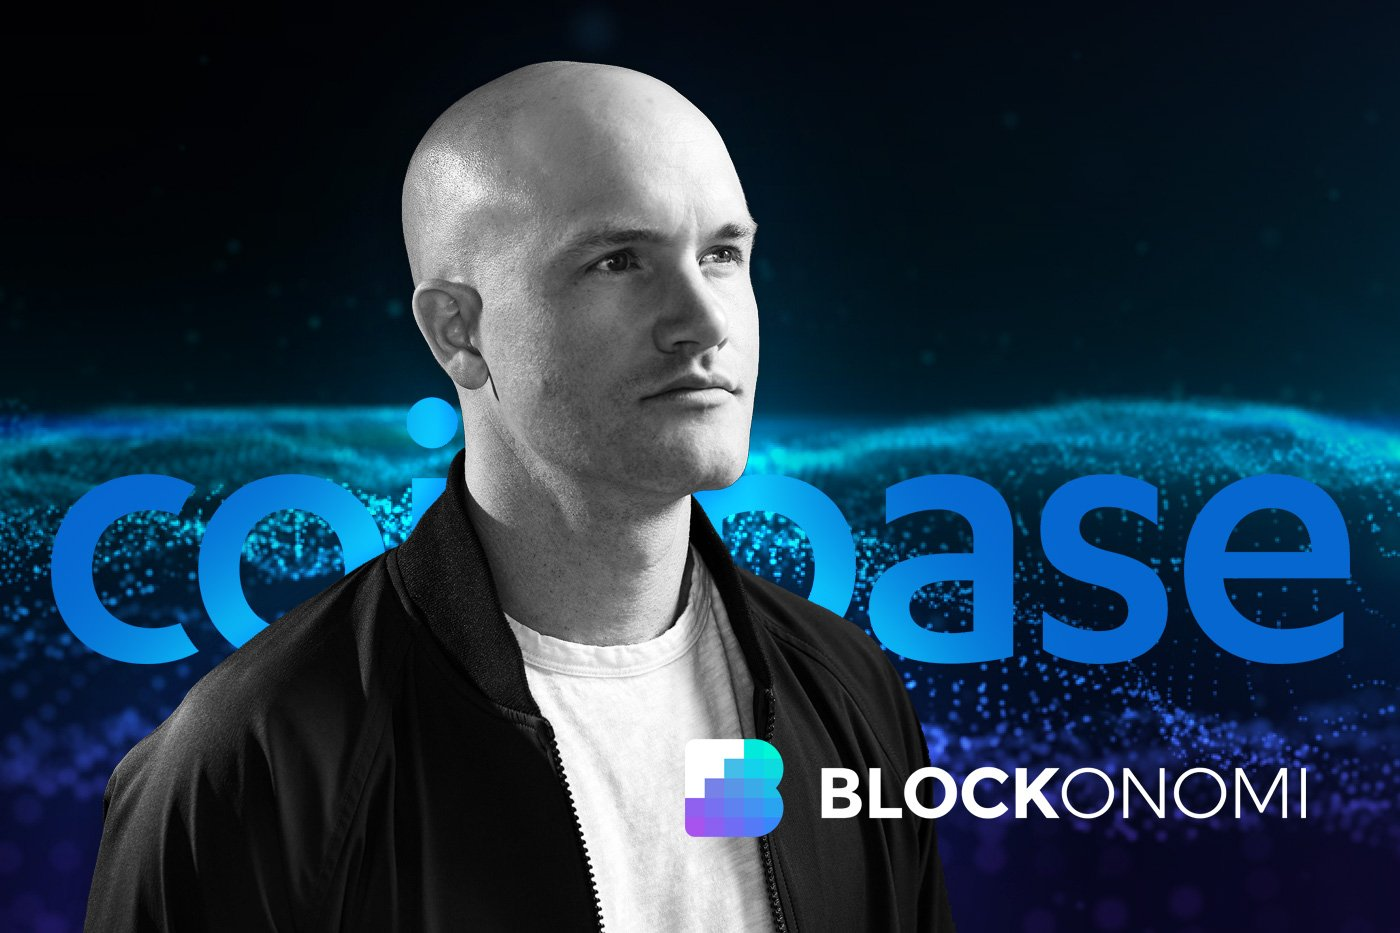 Coinbase CEO: Bitcoin's Potential Is Yet To Be Realized